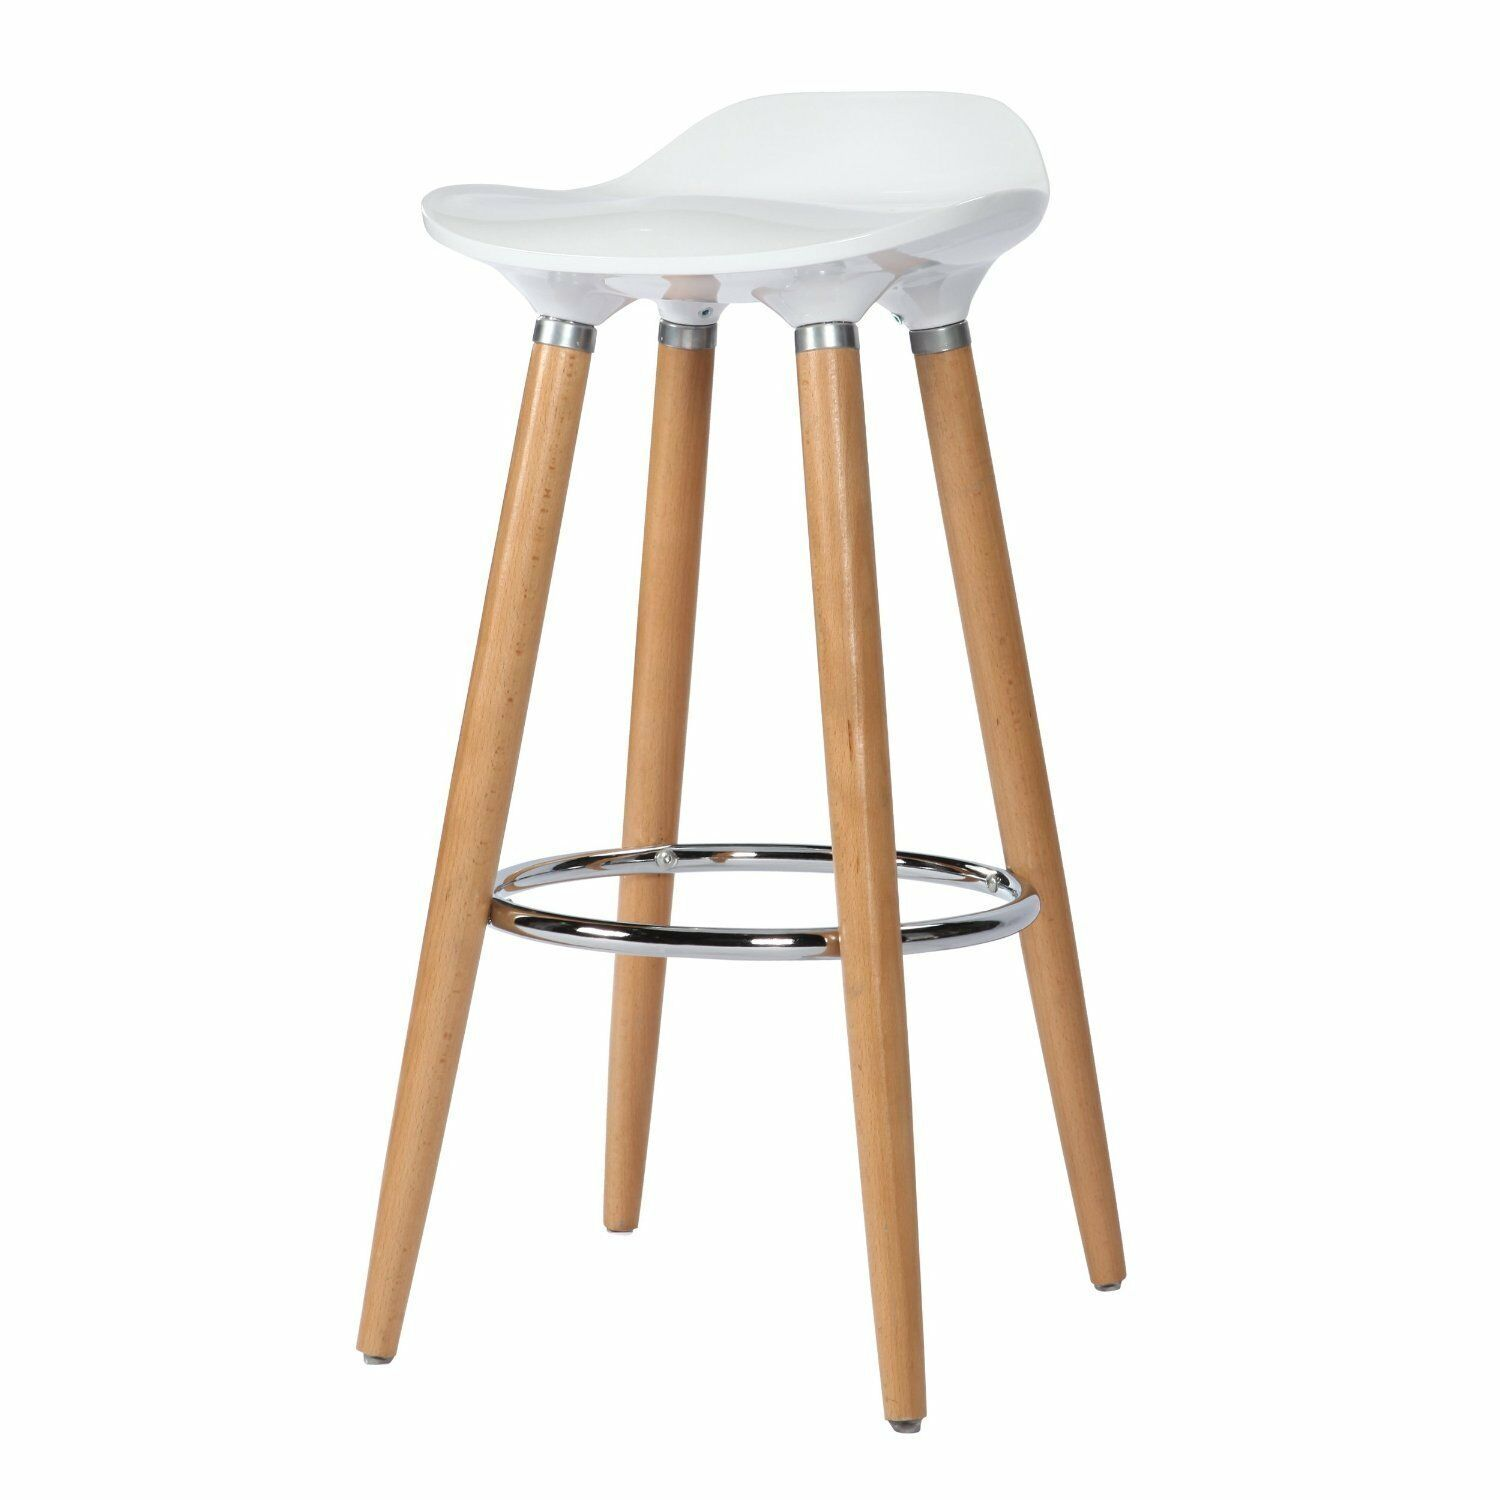 tabouret de bar italien blanc neuf eur 99 90 picclick fr. Black Bedroom Furniture Sets. Home Design Ideas